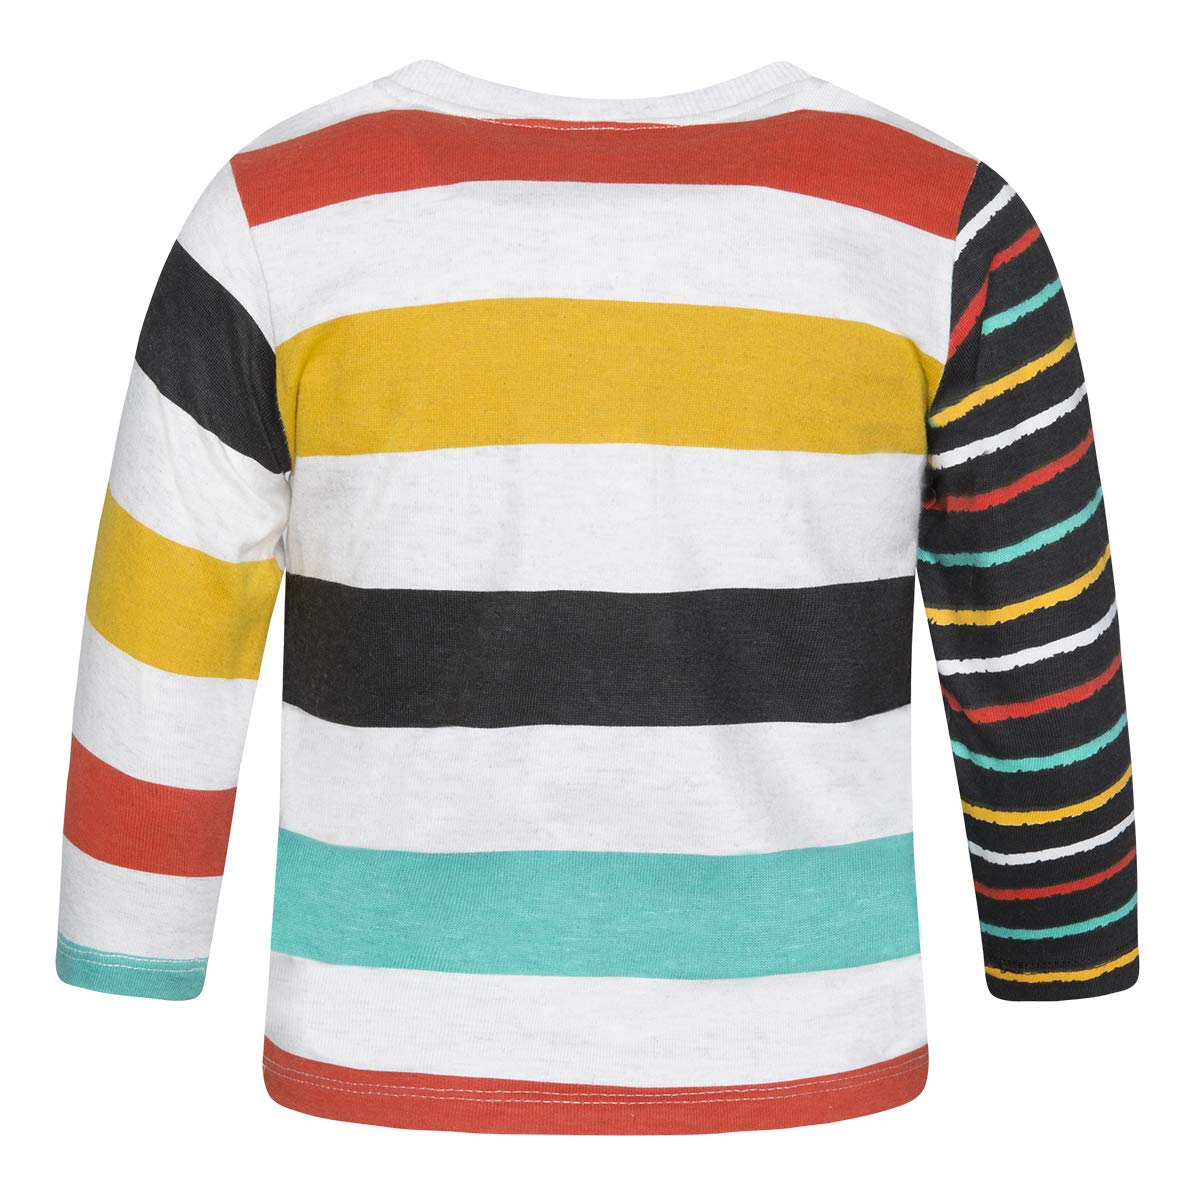 White Jersey T-Shirt Striped PAINTFOR BOY Chalk Painting